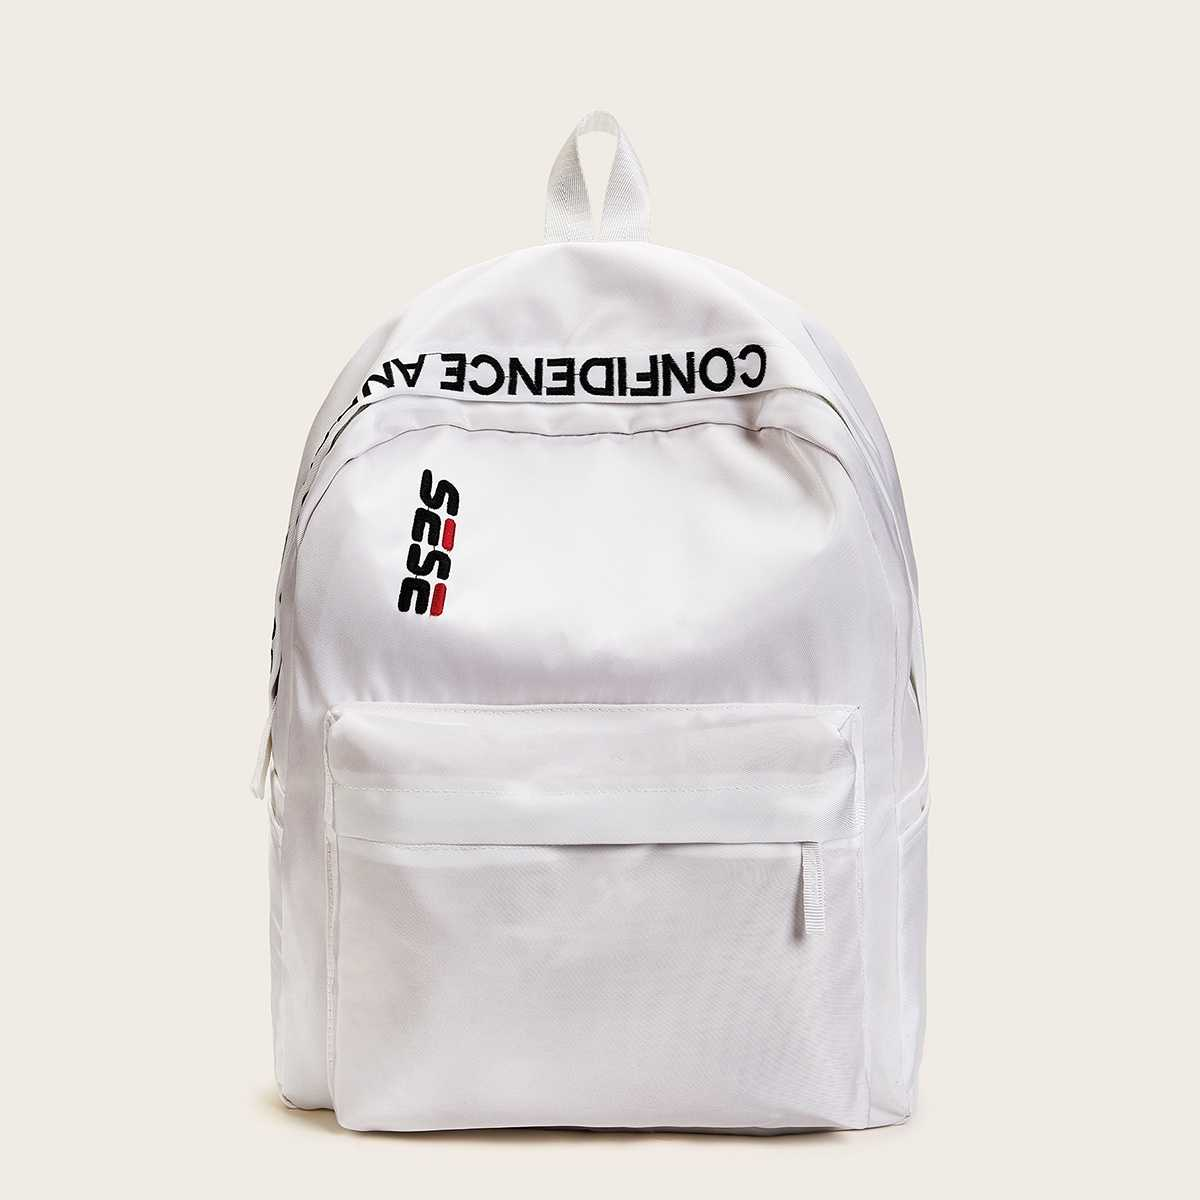 Letter Embroidery Oxford Backpack in White by ROMWE on GOOFASH